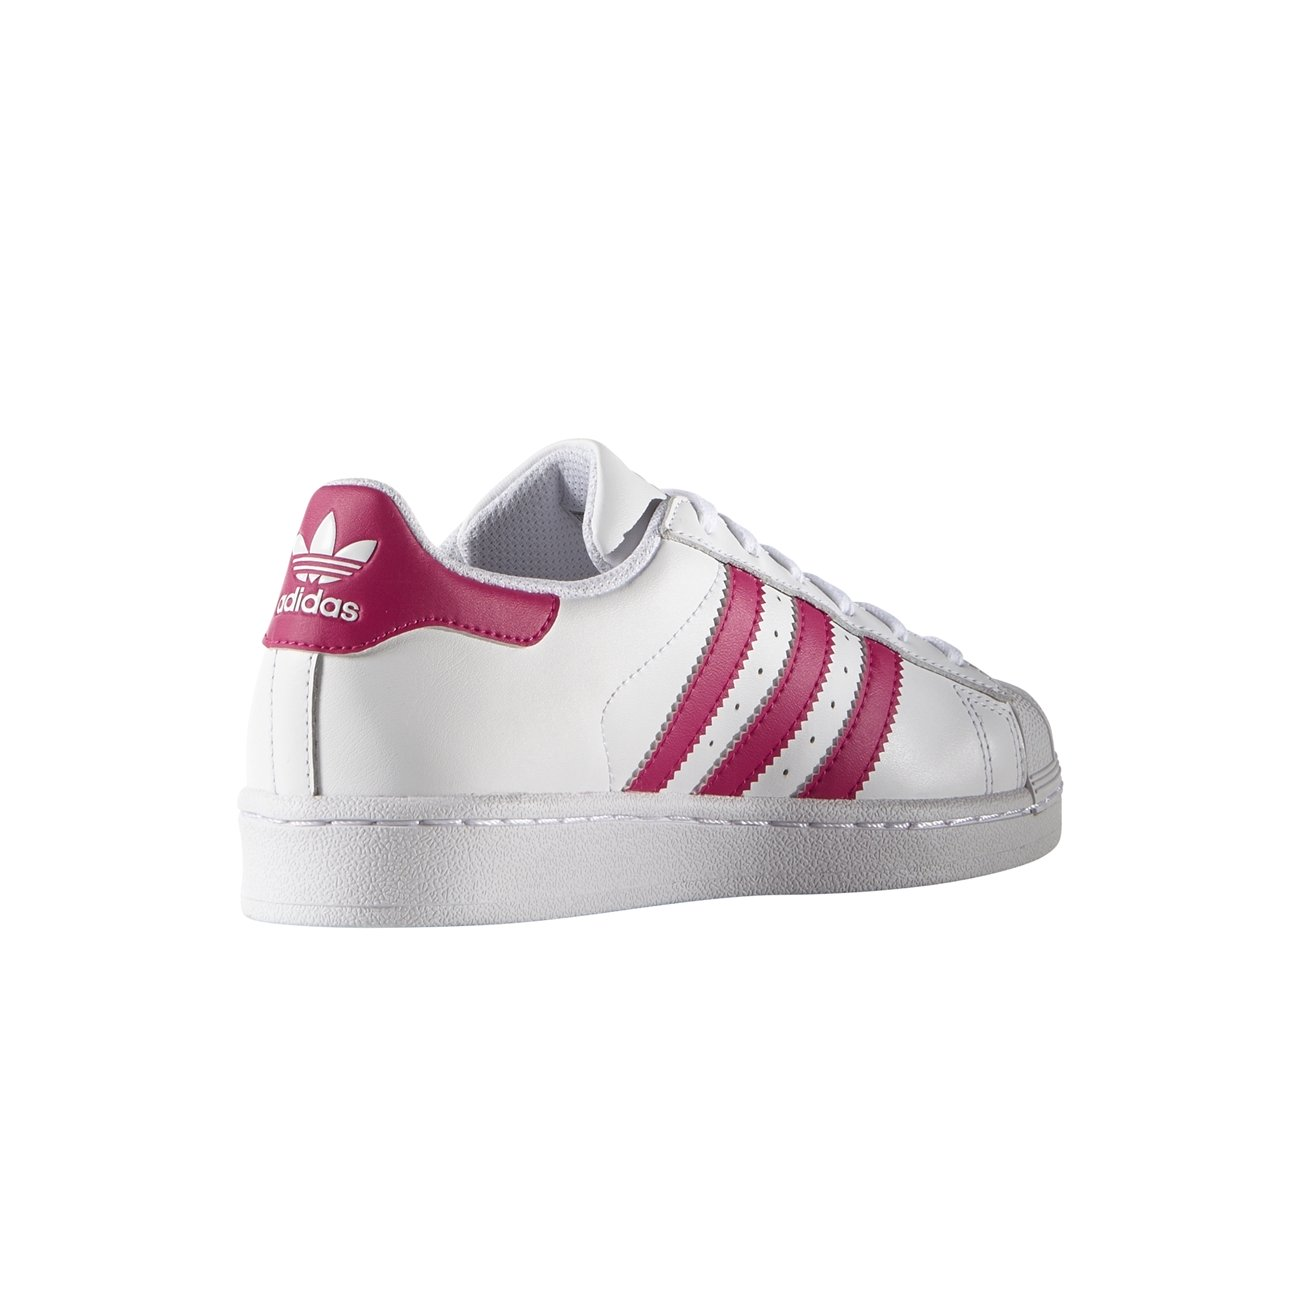 outlet store defd8 9fda4 Adidas Originals Superstar Foundation J